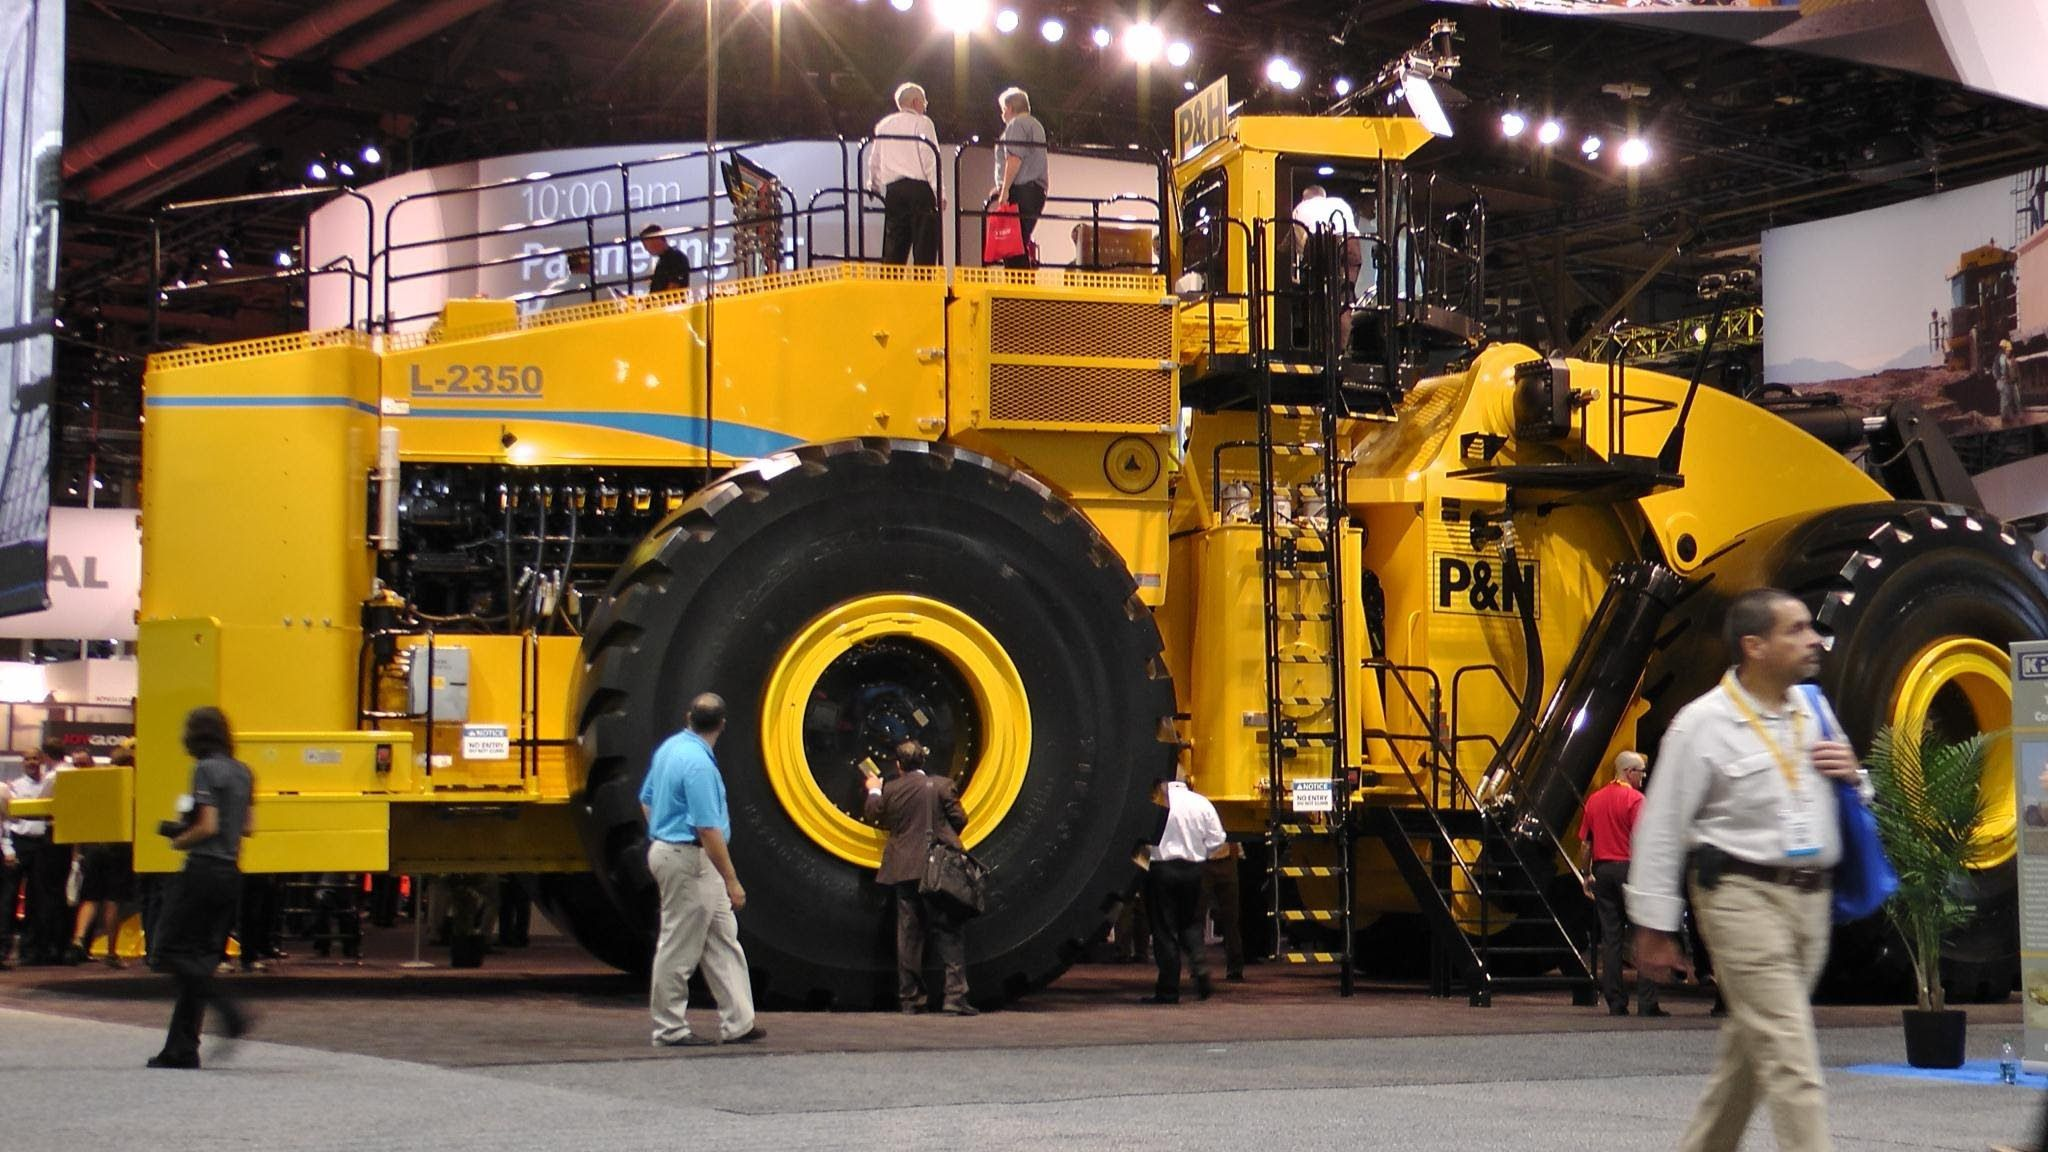 Biggest Wheel Loader In The World 70 Yard Super High Lift Letourneau L2350 The L 2350 Wheel Loader With A Construction Construction News Construction Vehicles